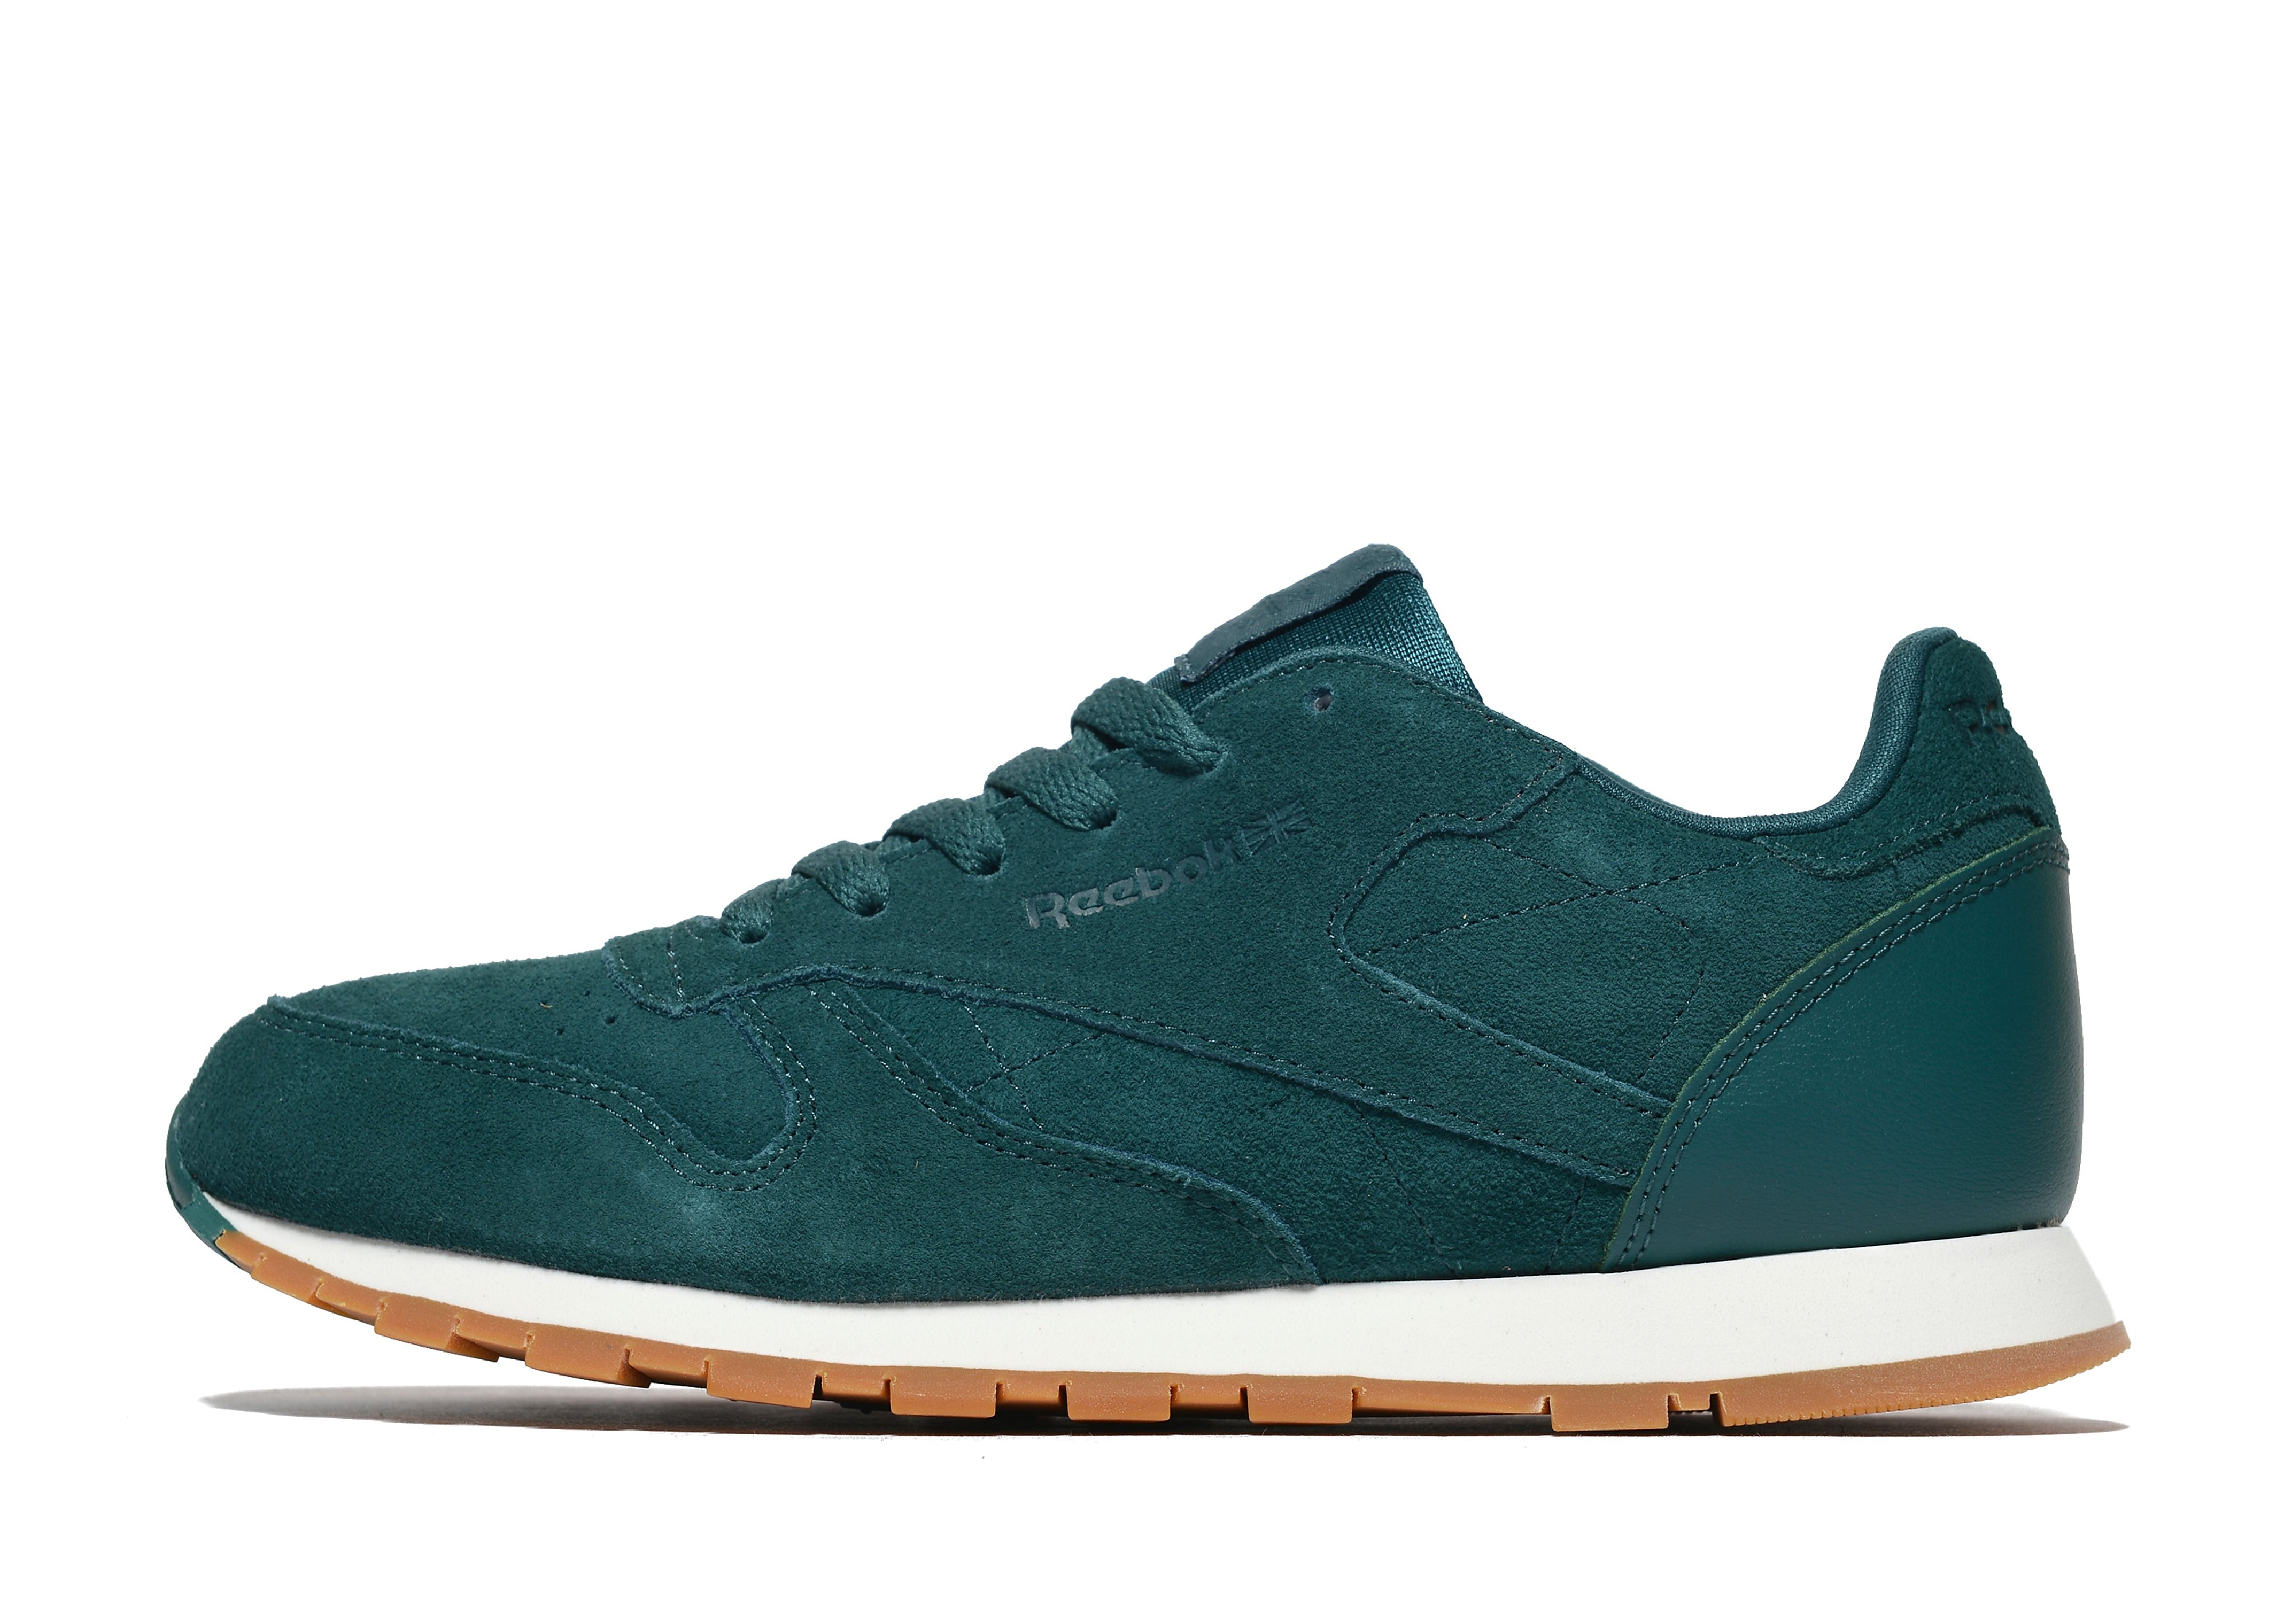 Image of   Reebok Classic Leather Gum Trainers